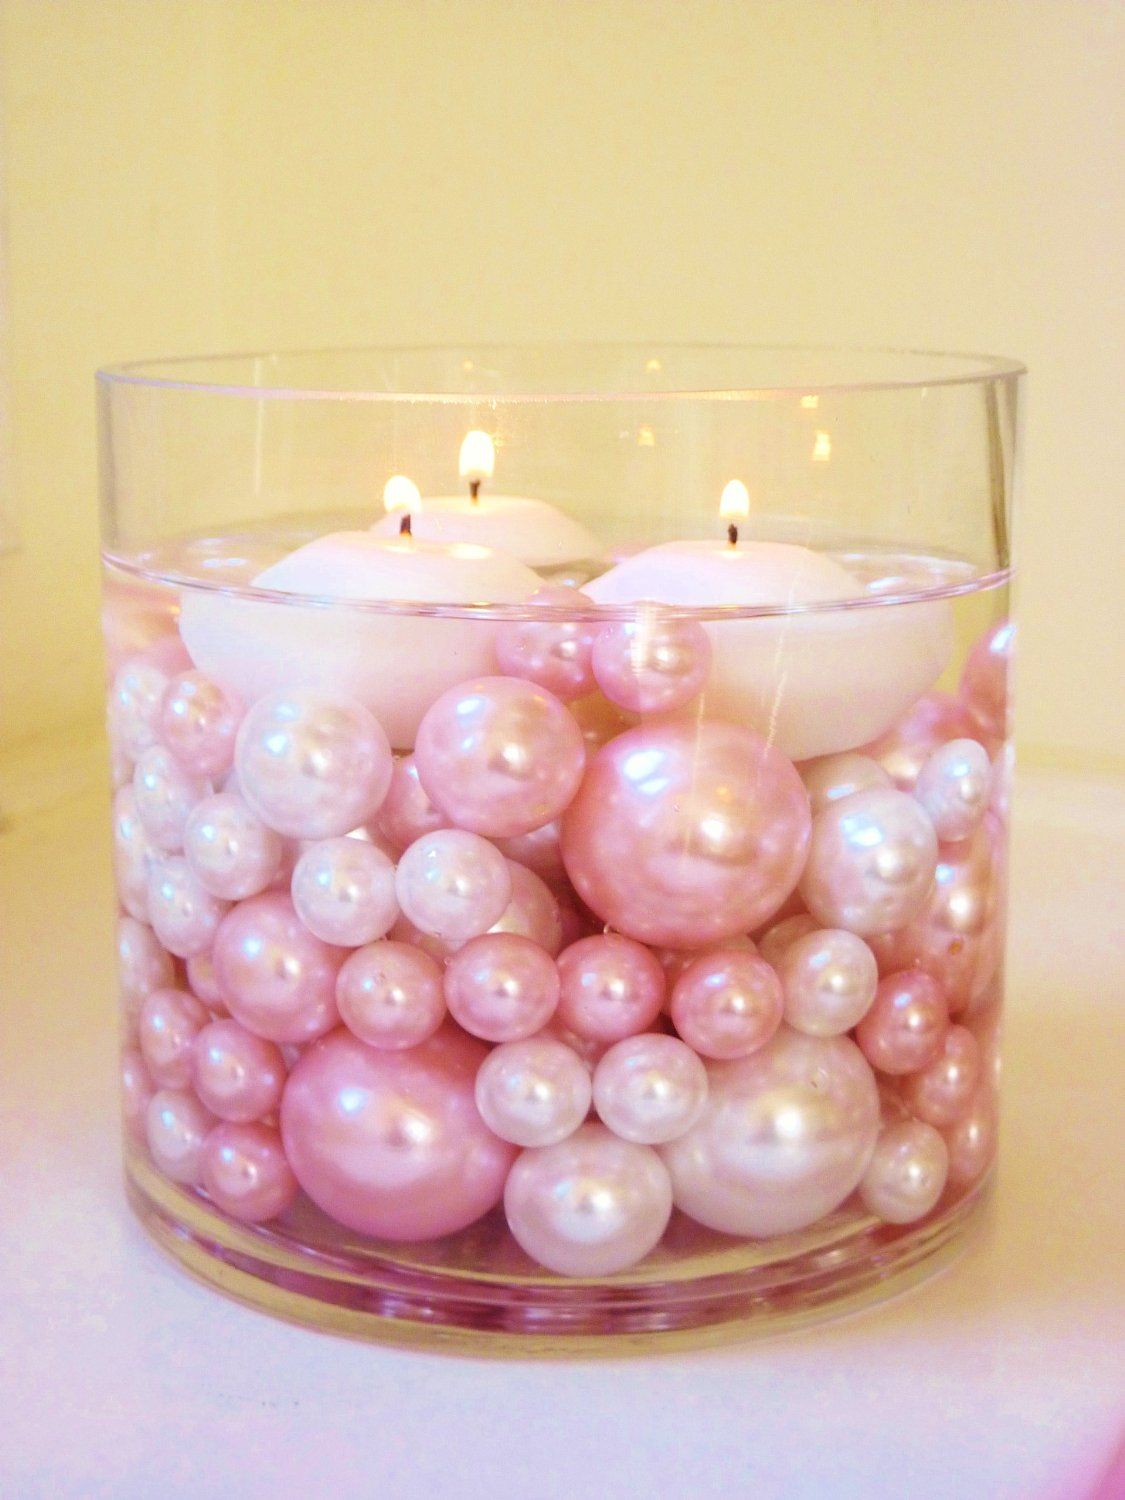 Celebrate It Decorative Fillers Unique Vase Fillers 80pc Pack Jumbo Light Pink Pearls And White